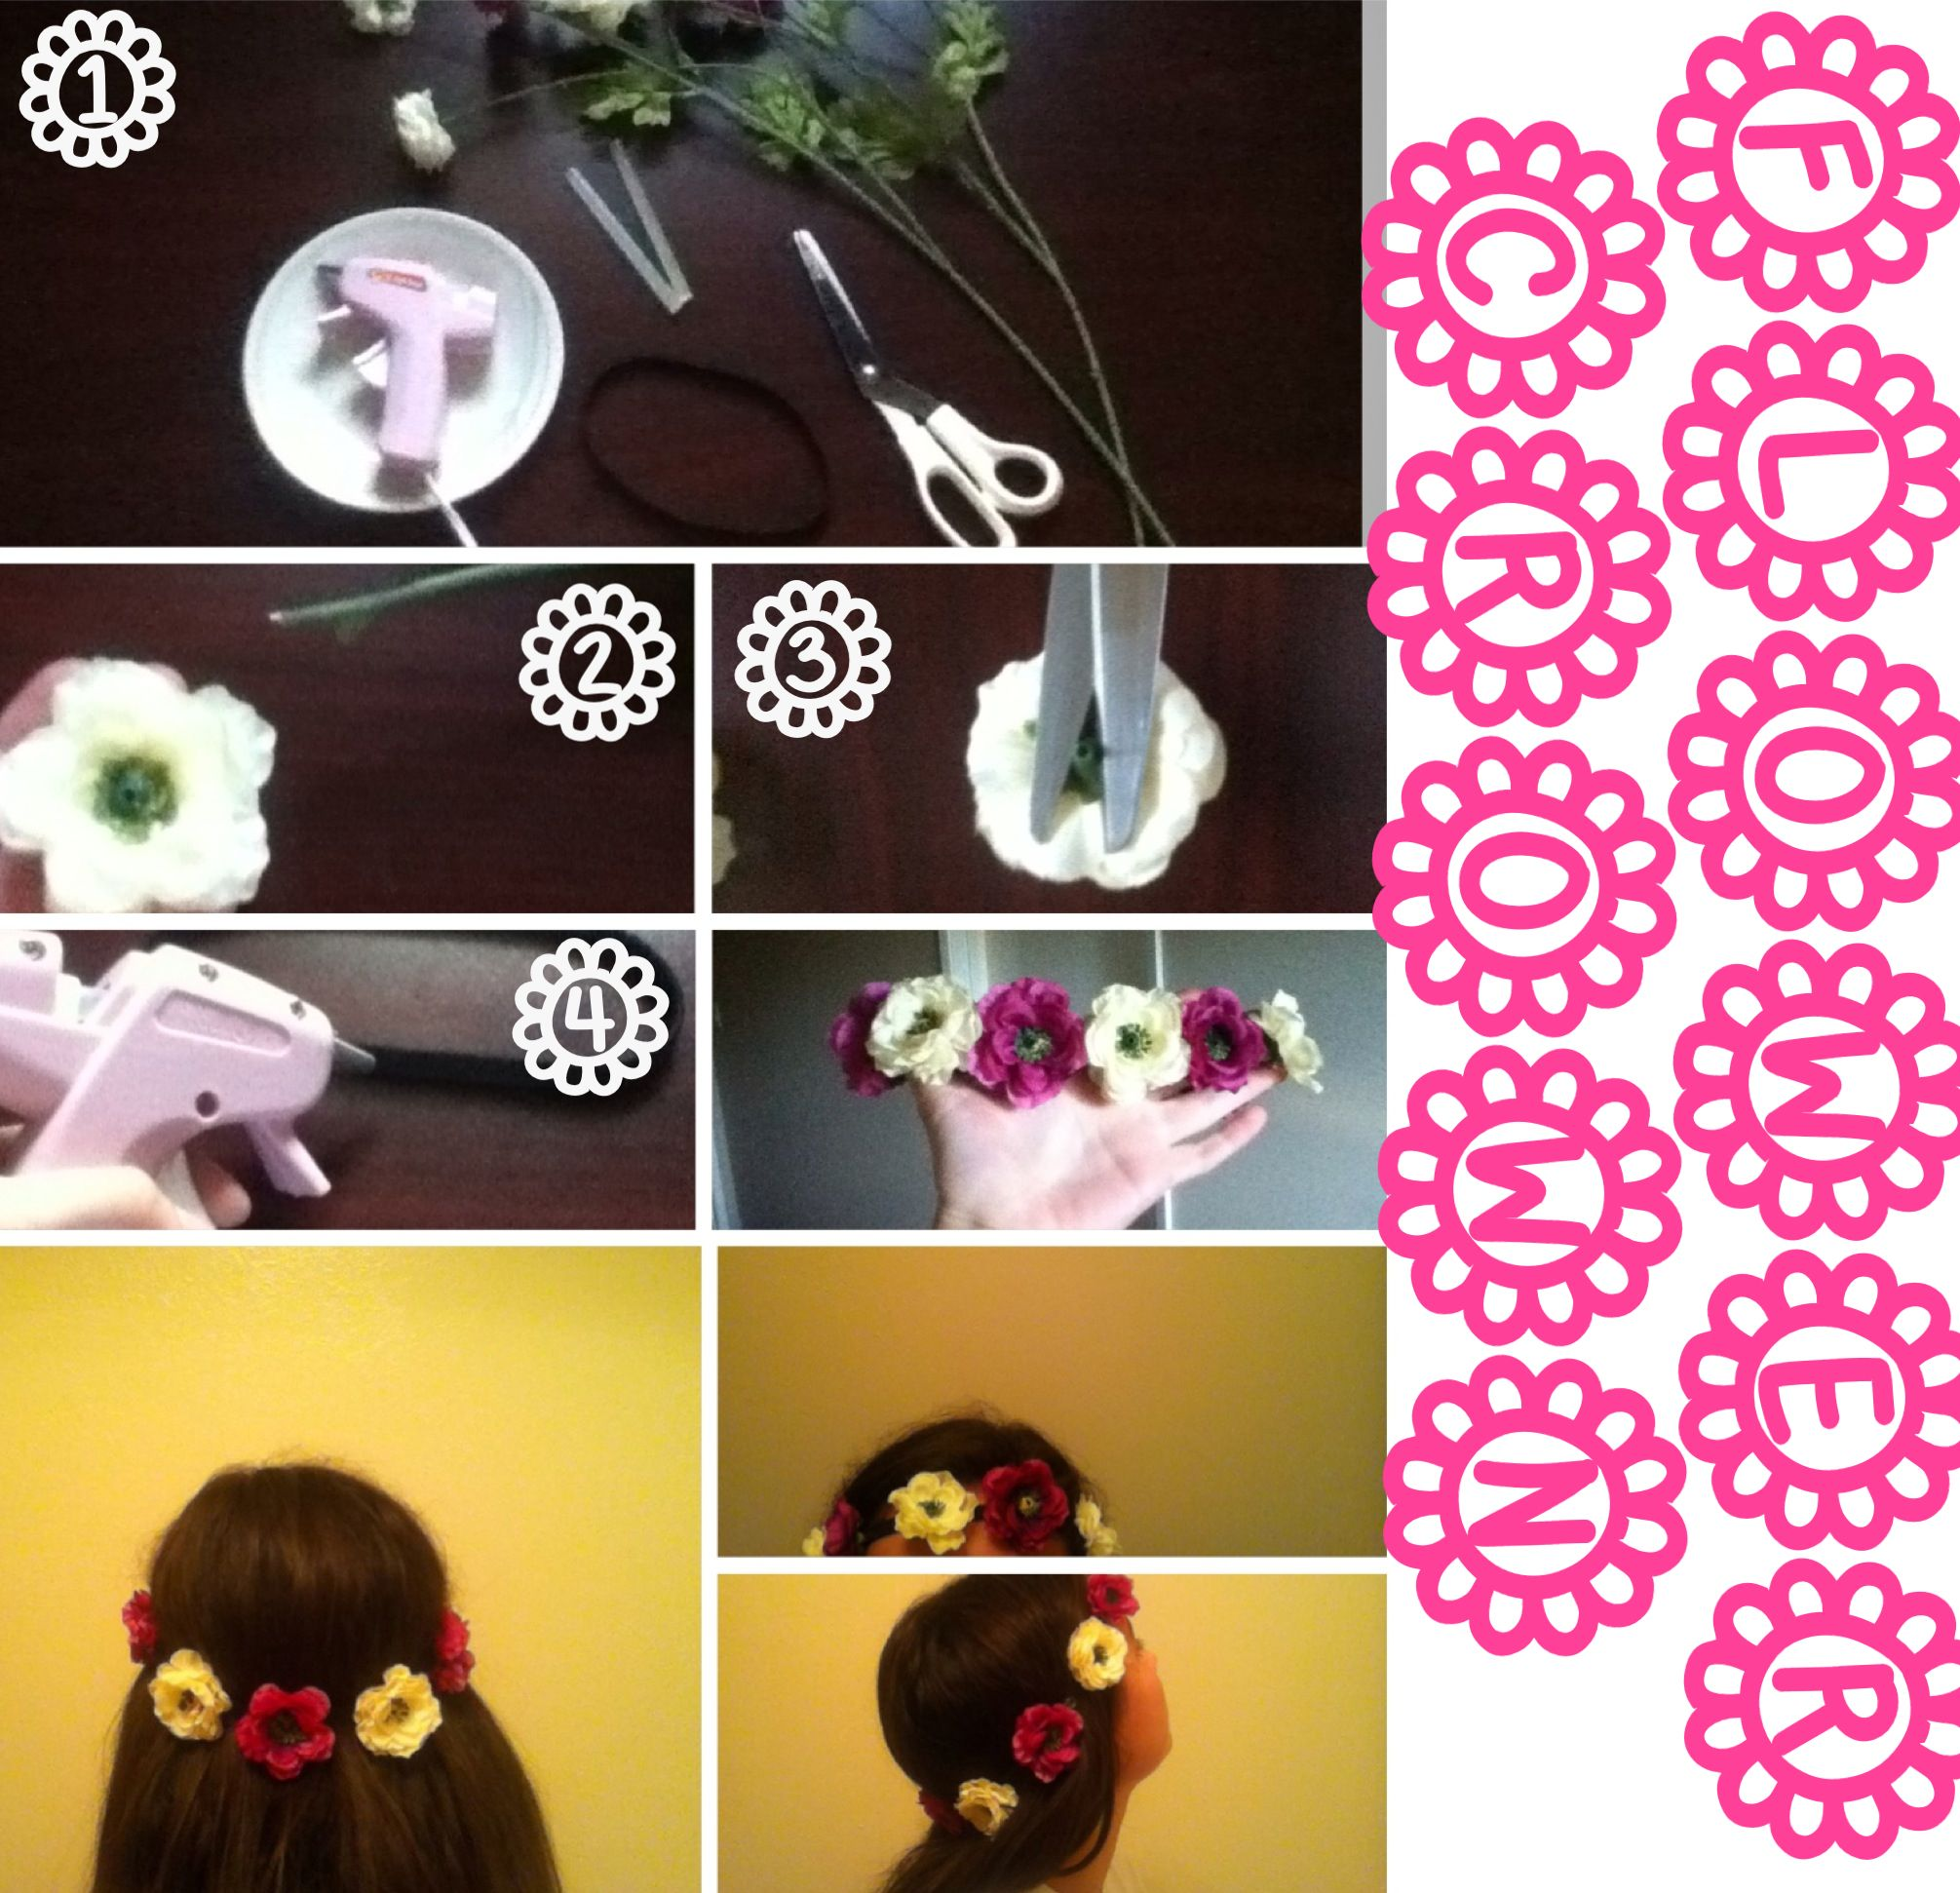 Diy flower crown flower crown supplies fake flowers diy flower crown flower crown supplies fake flowers headband hot glue gunglue sticks scissors steps take off the flowers cut the backs off hot izmirmasajfo